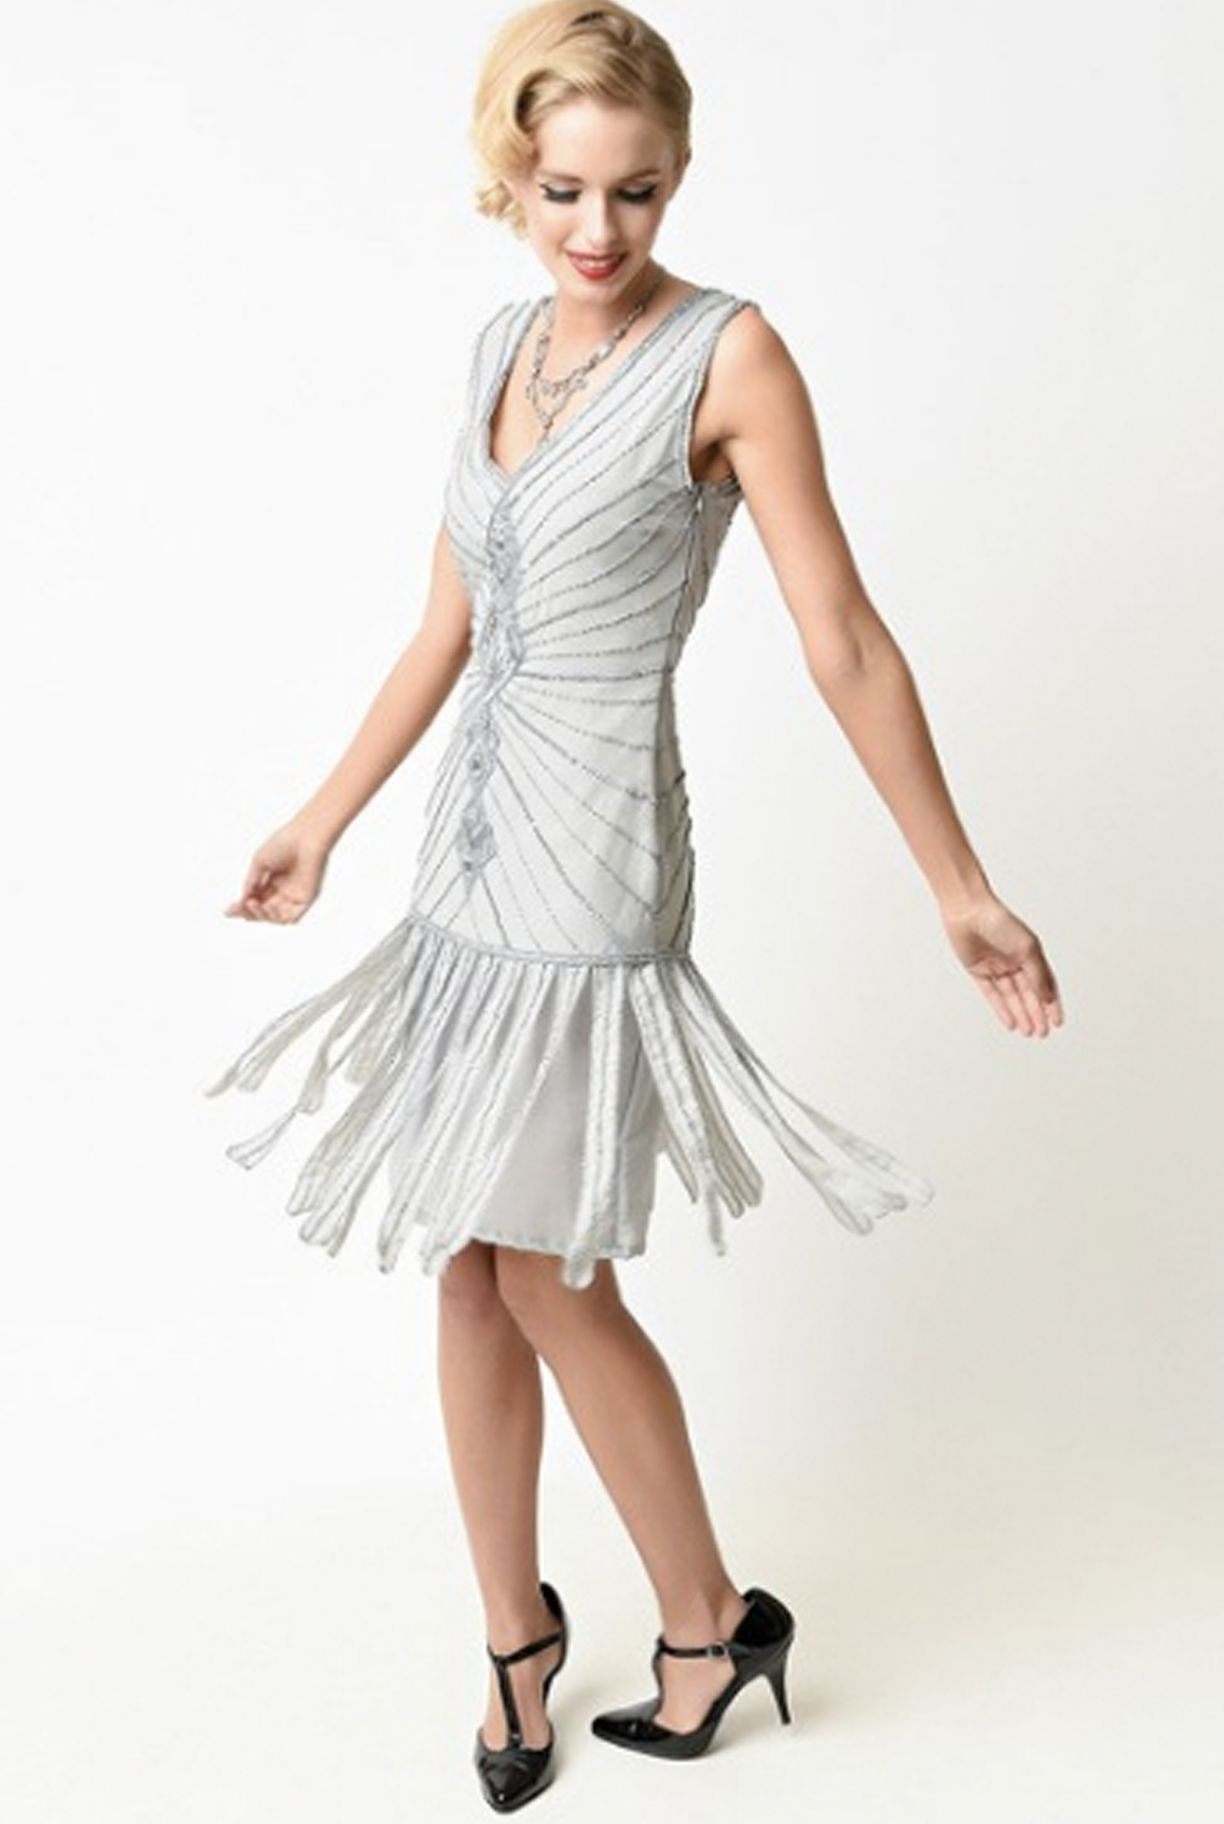 Go Back In Time To The Roaring Twenties And Trade Up Your Chic Style For This Impeccable Hand